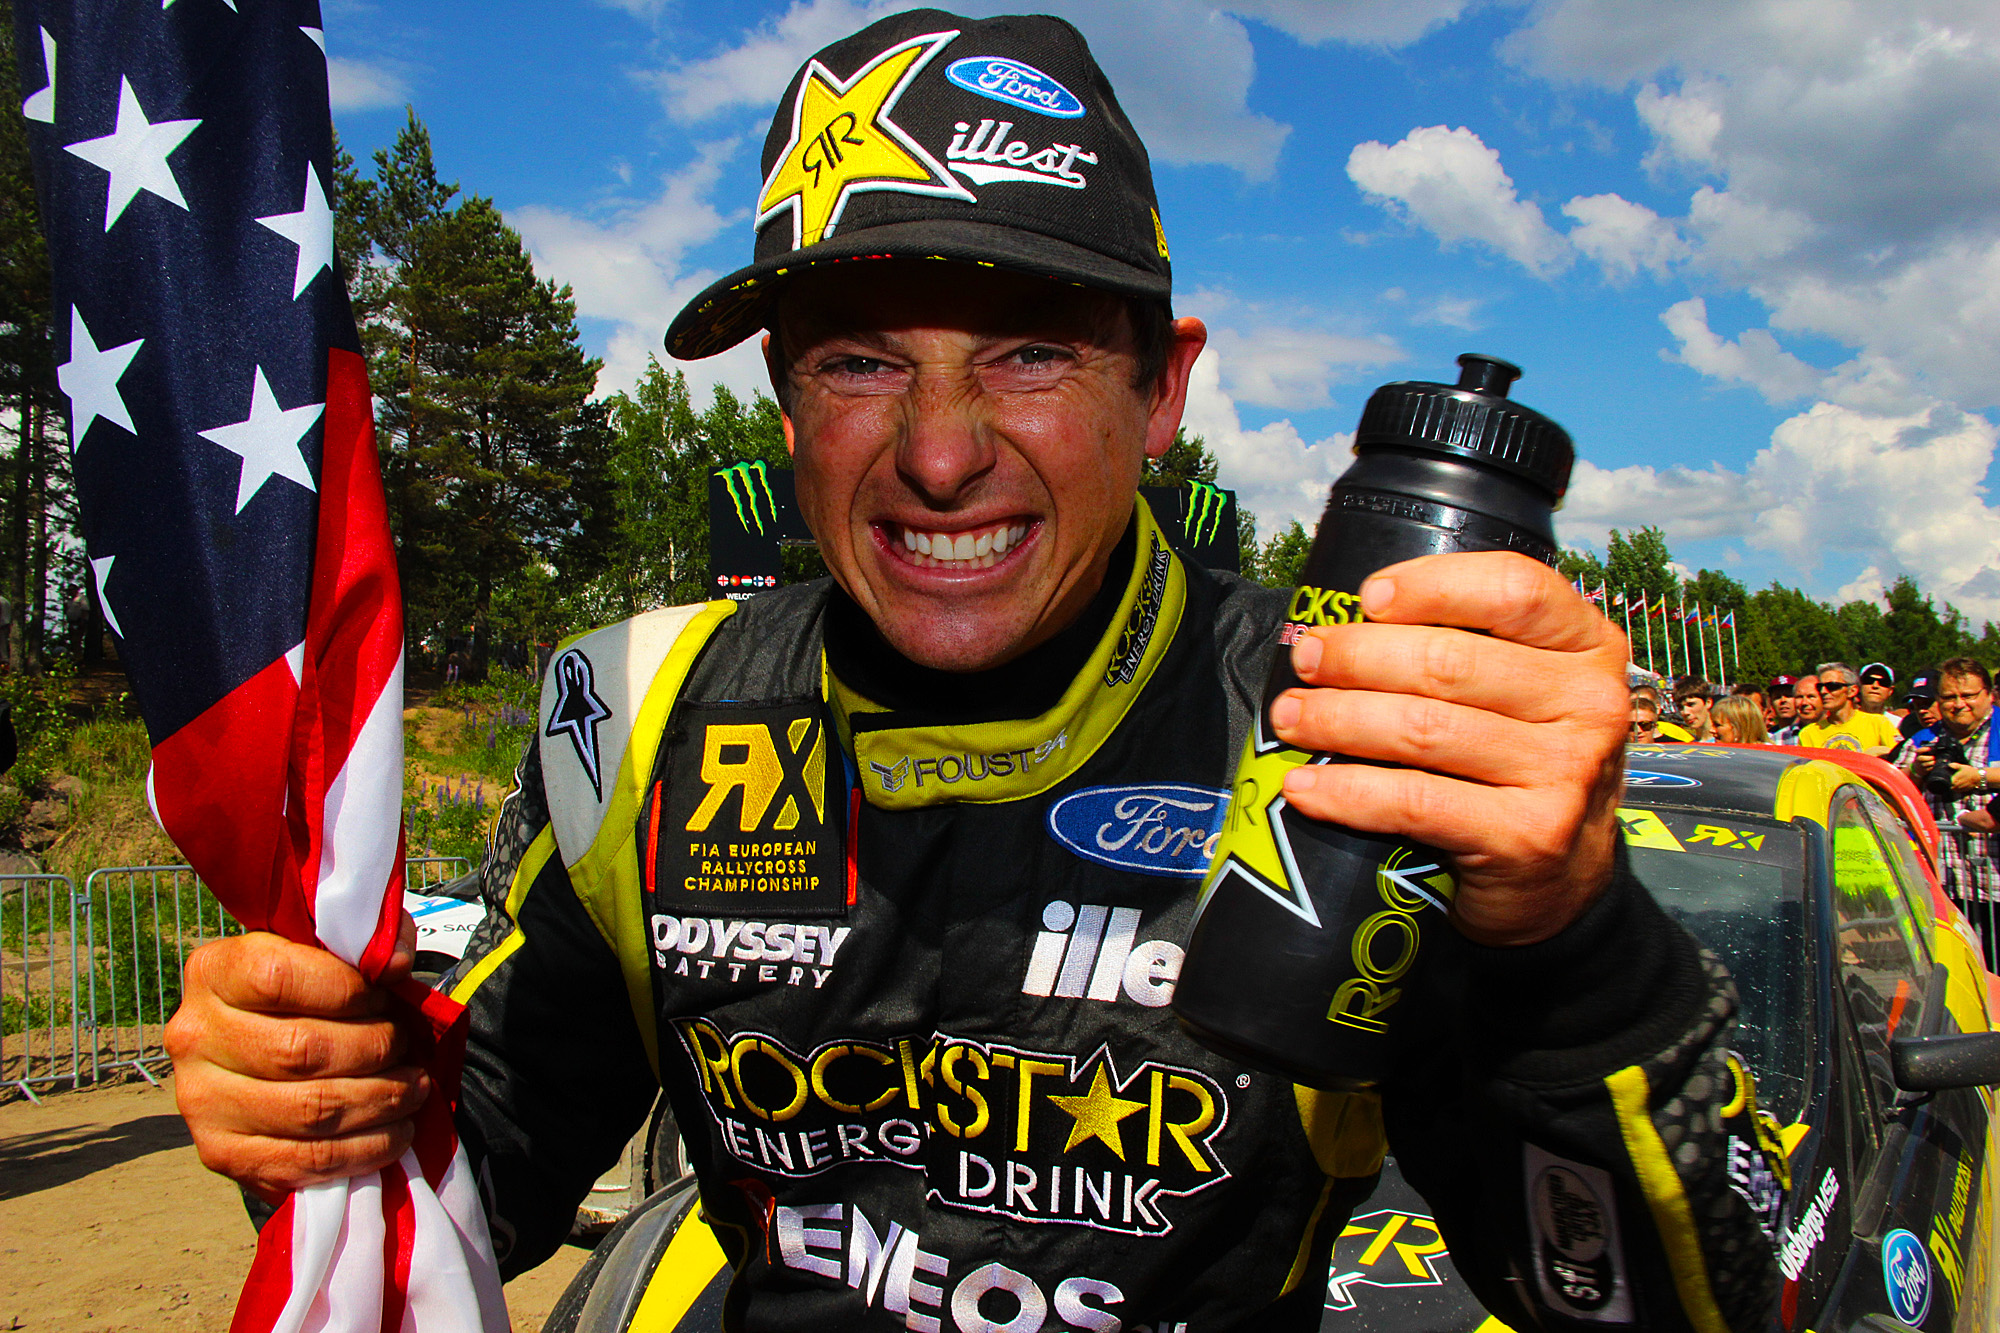 Victory for Tanner Foust in Finland